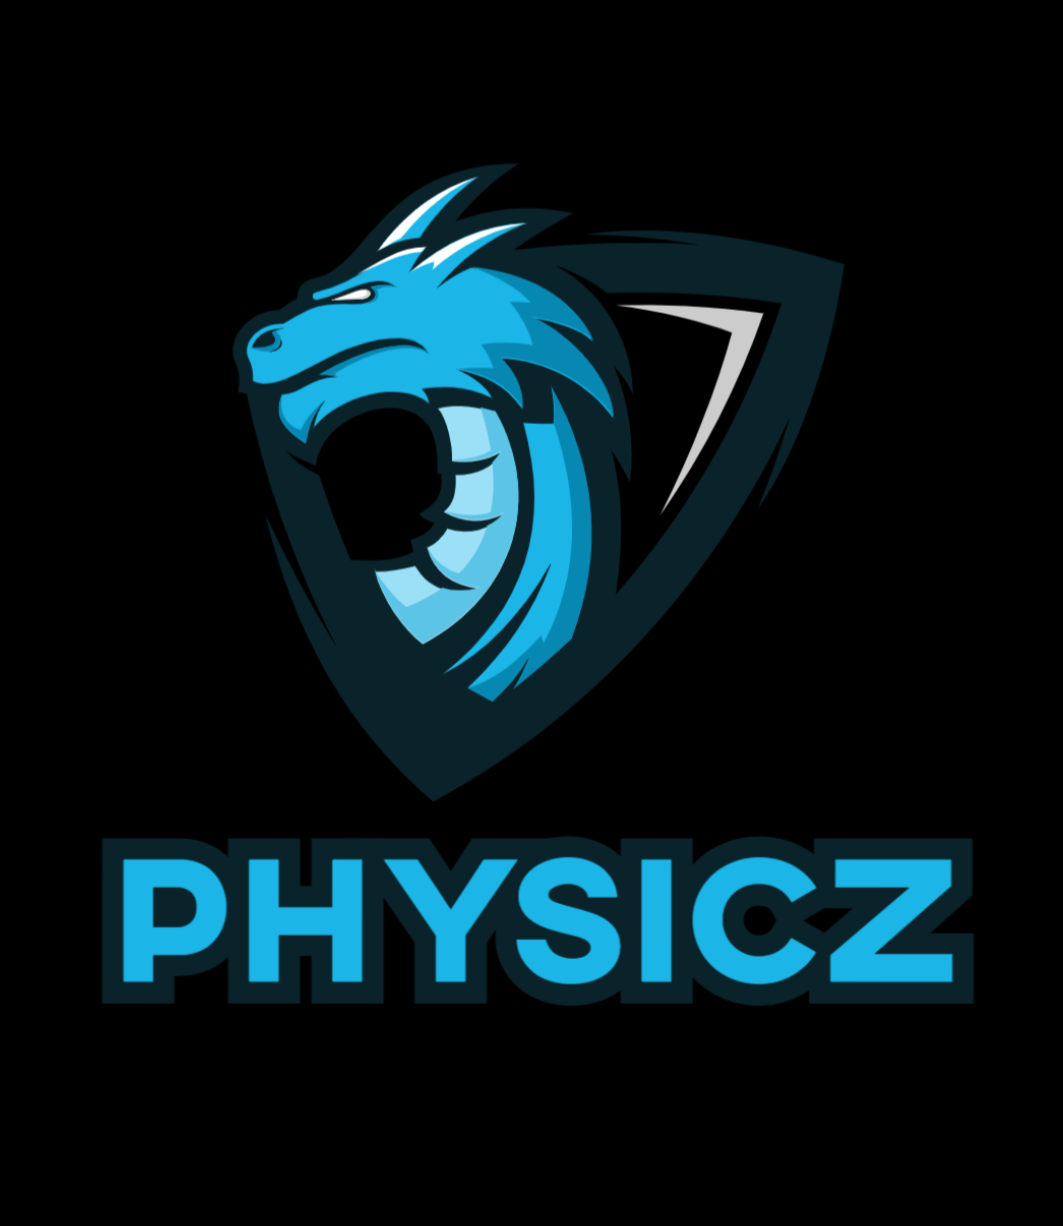 Physicz Fortnite Clan